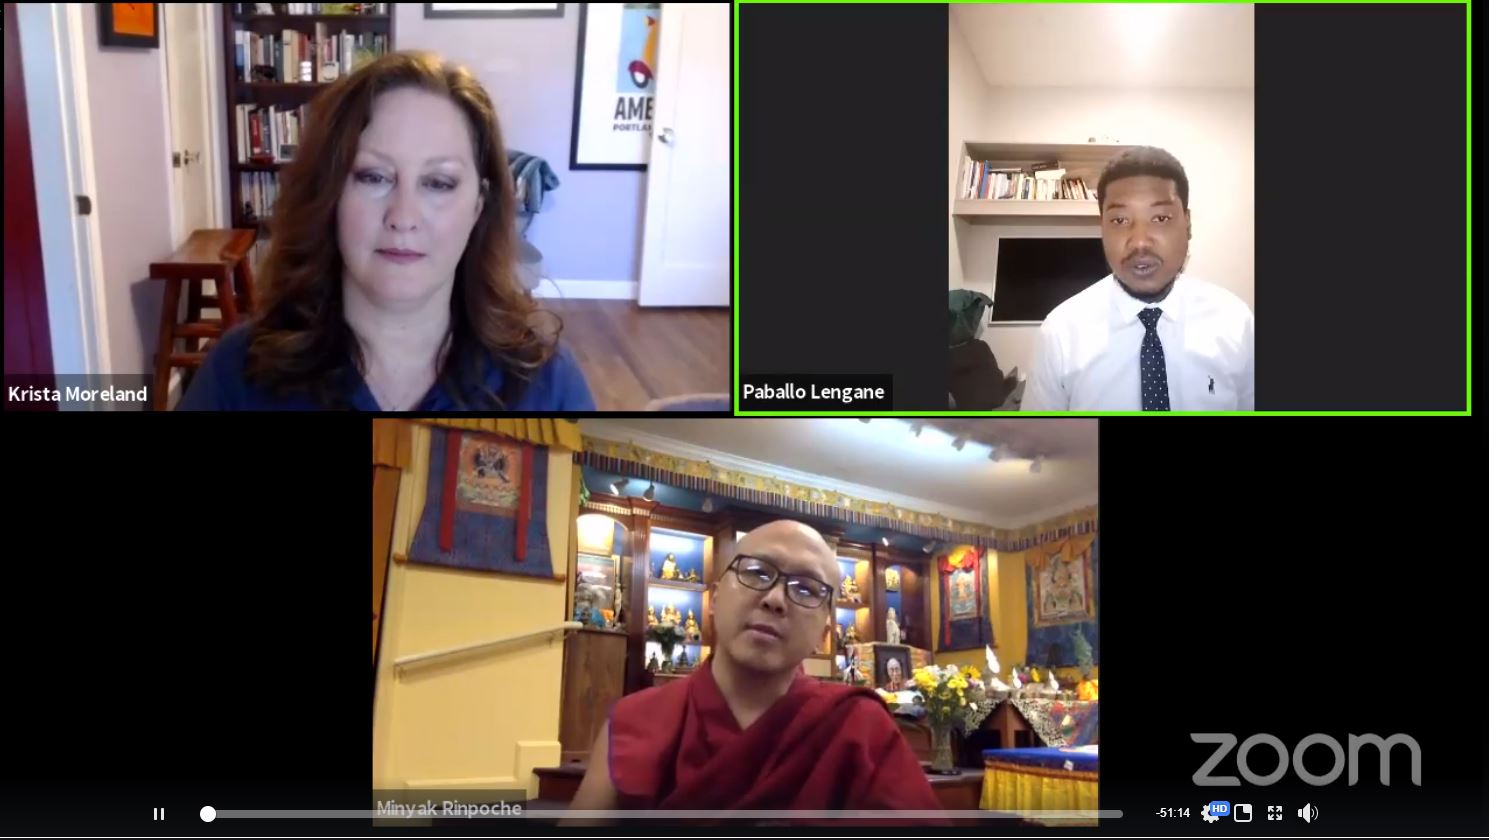 Screenshot of the 2 speakers and the host.